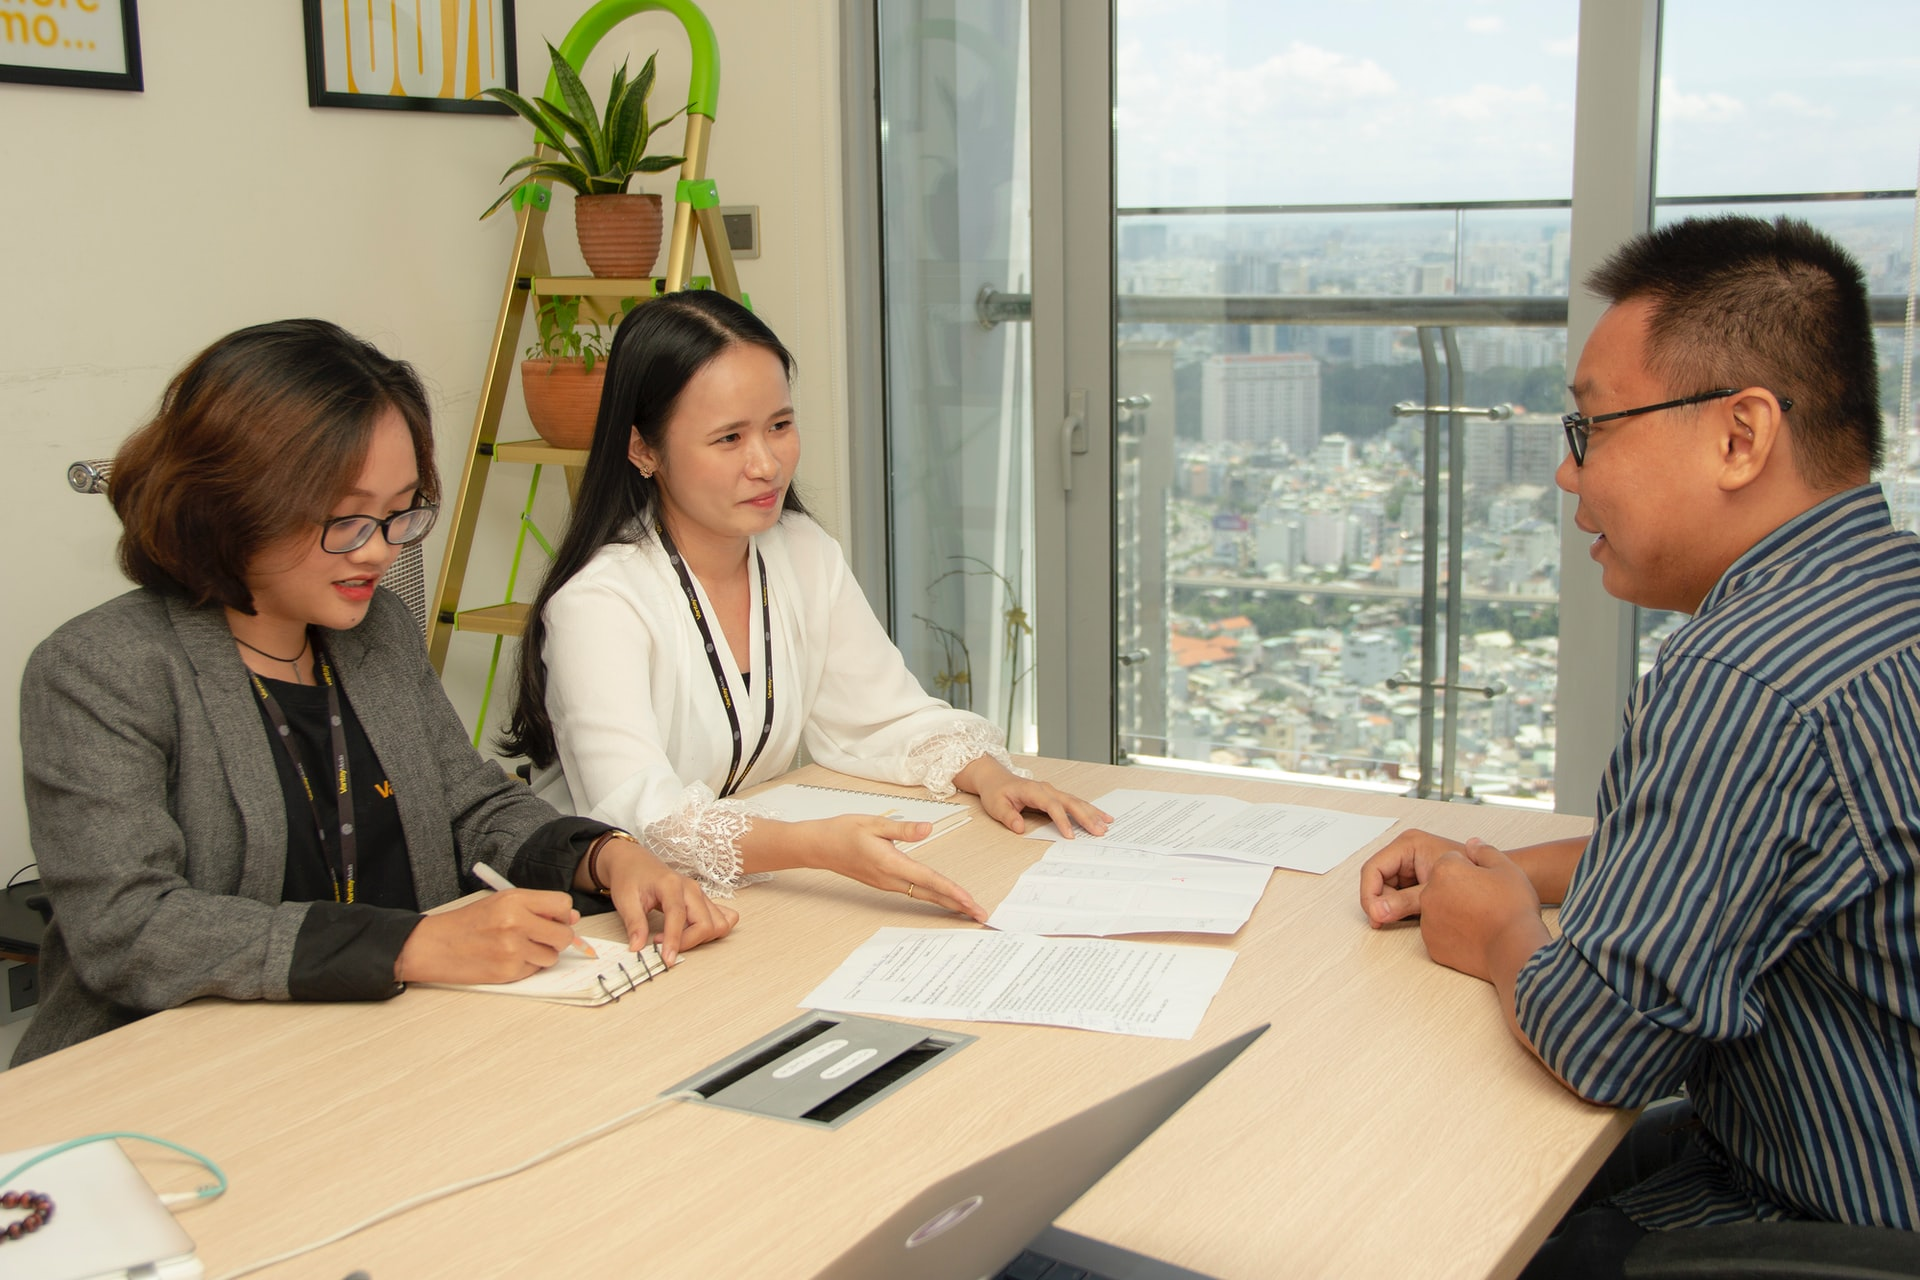 How to Hire Candidates to Ensure the Best Fit with Your Team